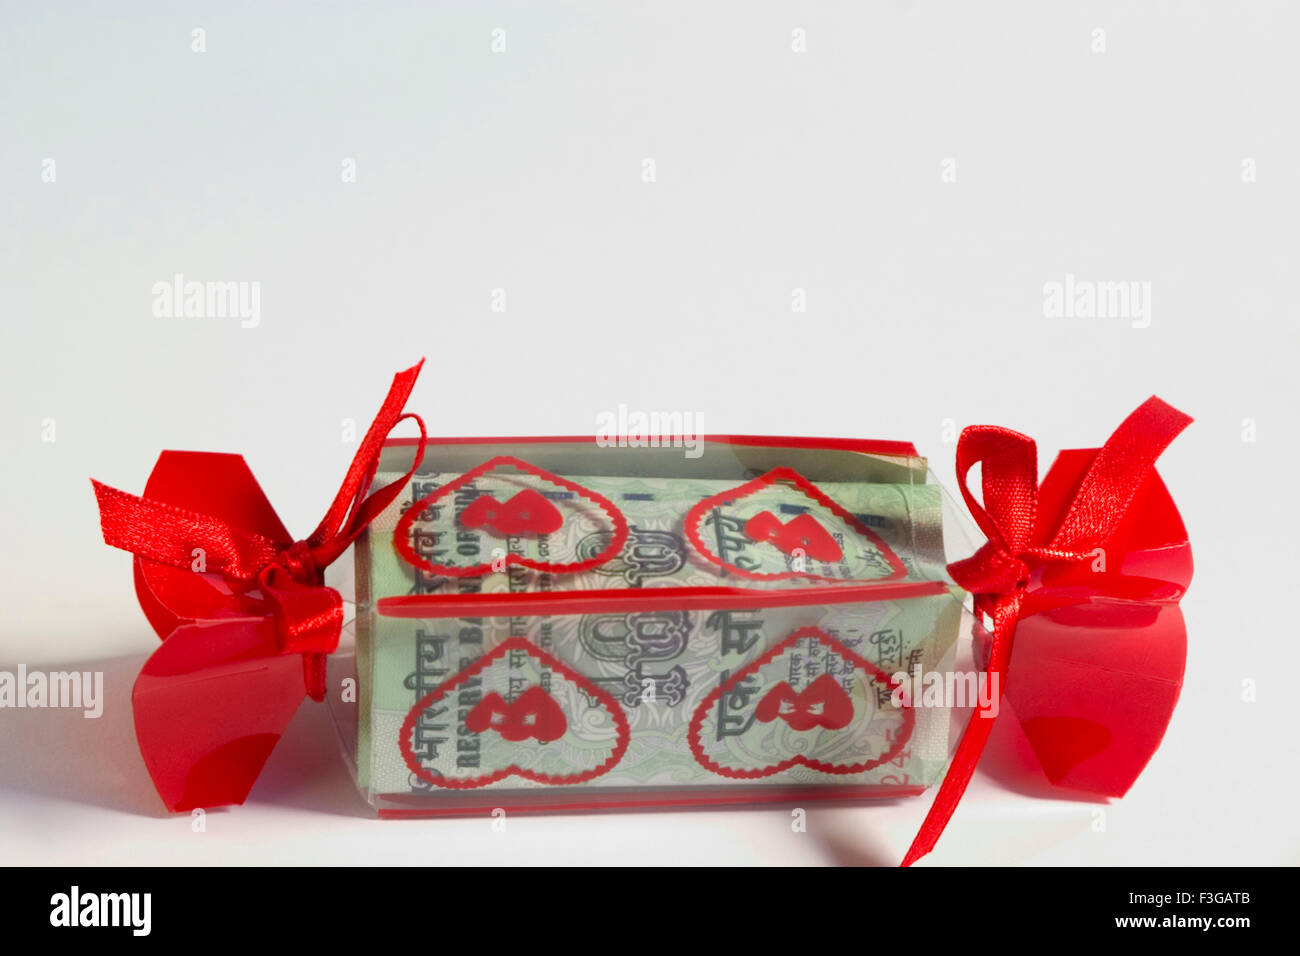 Concept ; hundred rupees Indian currency wrap in gift pack on white background Stock Photo